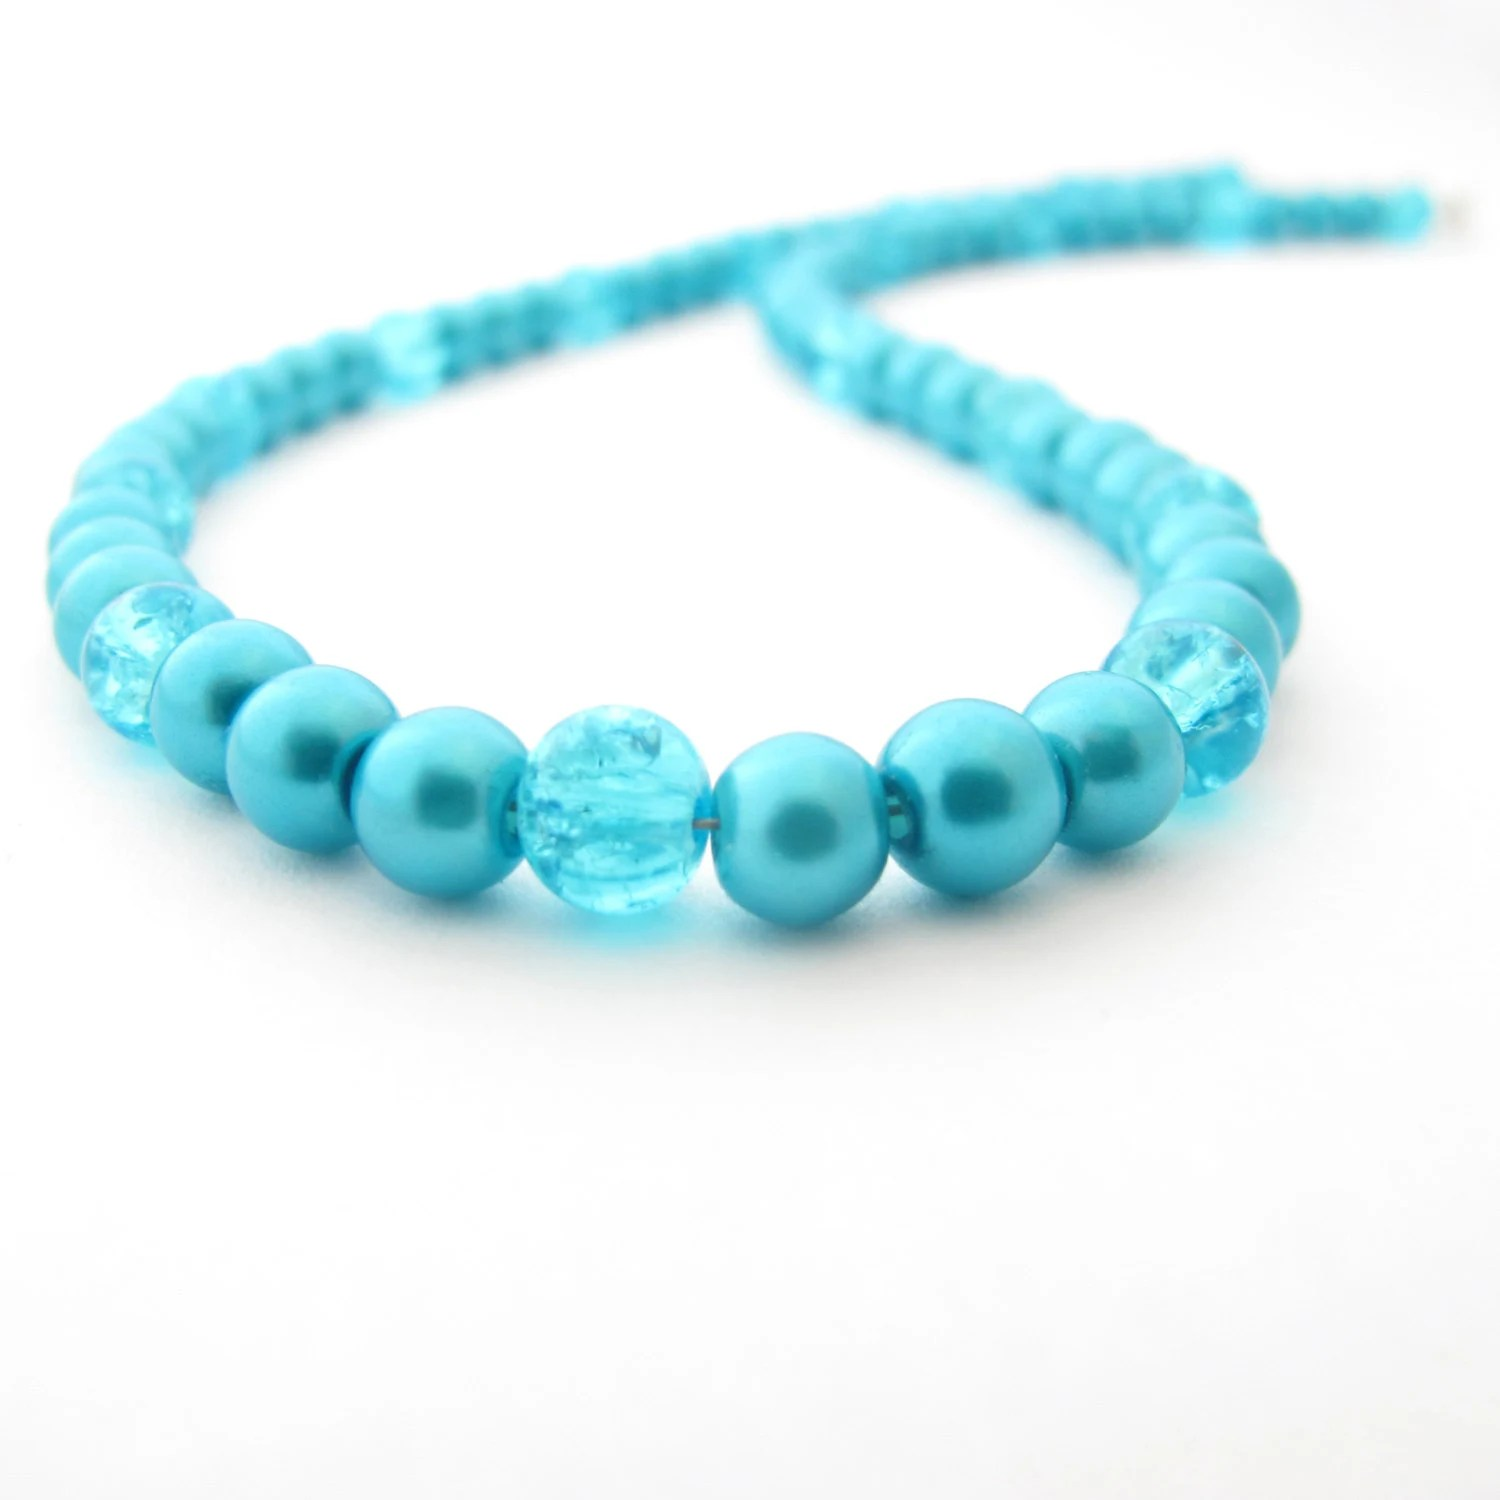 Turquoise Glass Beaded Necklace - MoonlightShimmer